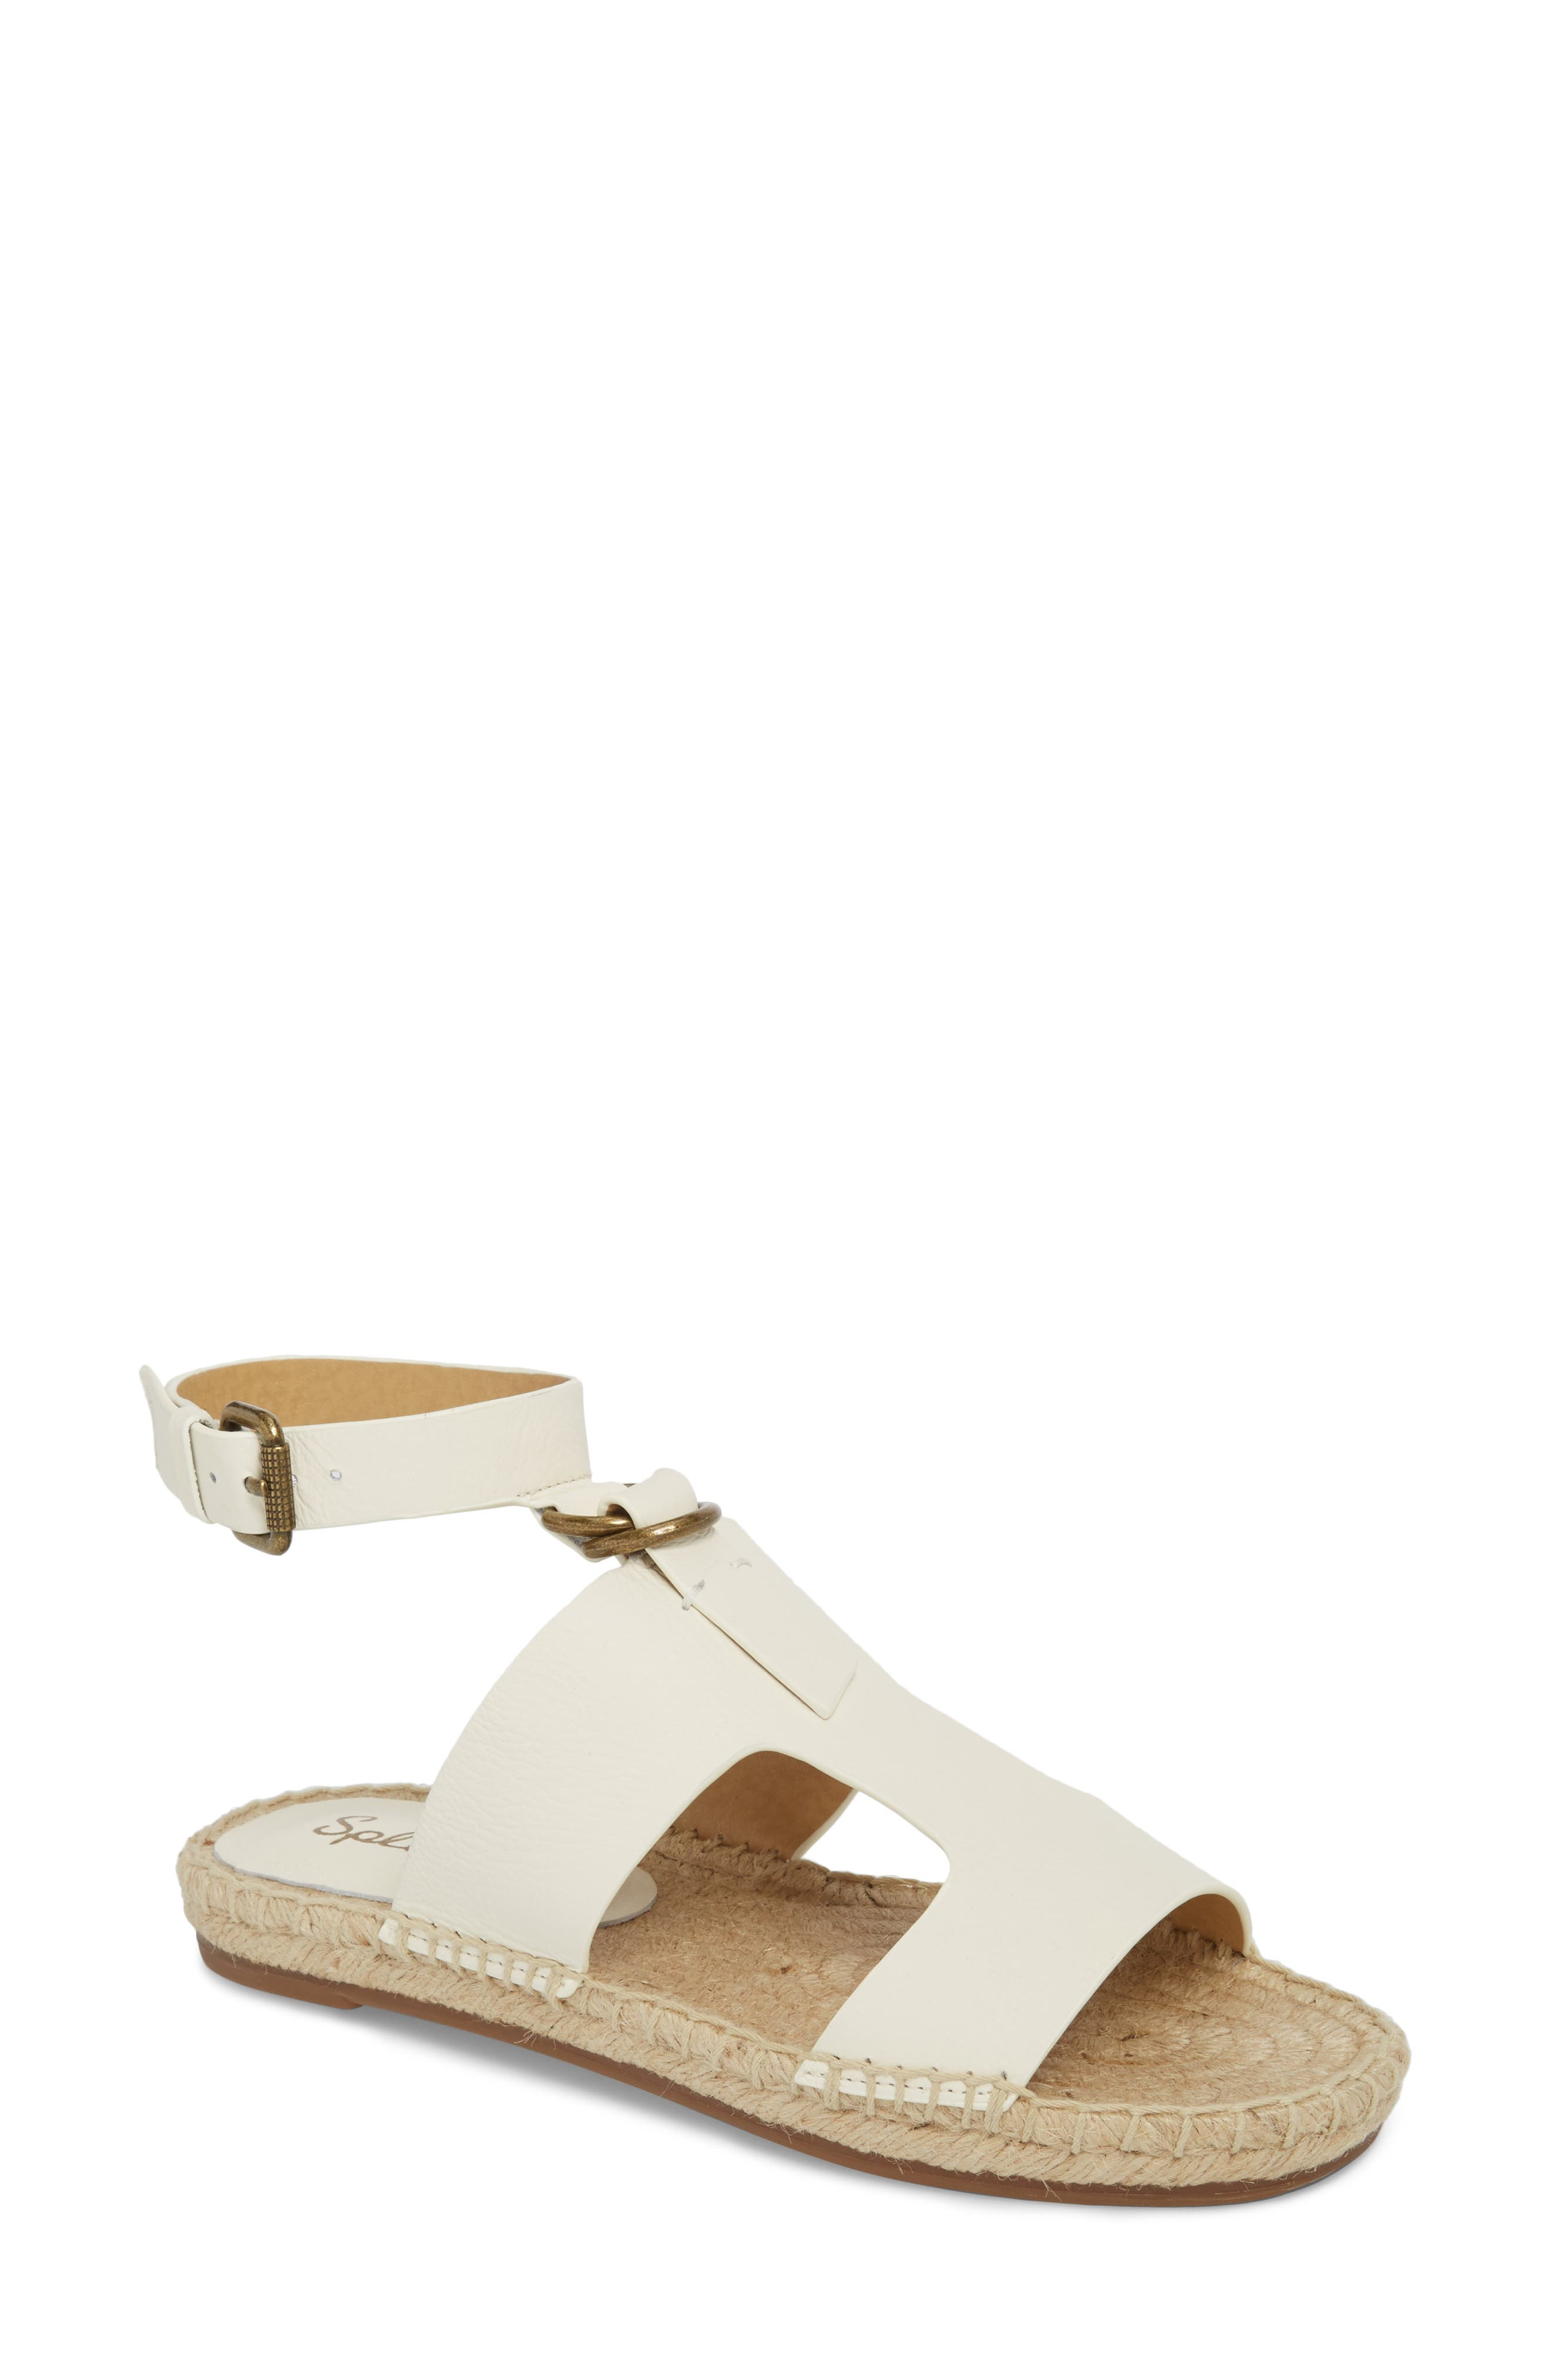 Farley Espadrille Sandal,                             Main thumbnail 1, color,                             OFF WHITE LEATHER